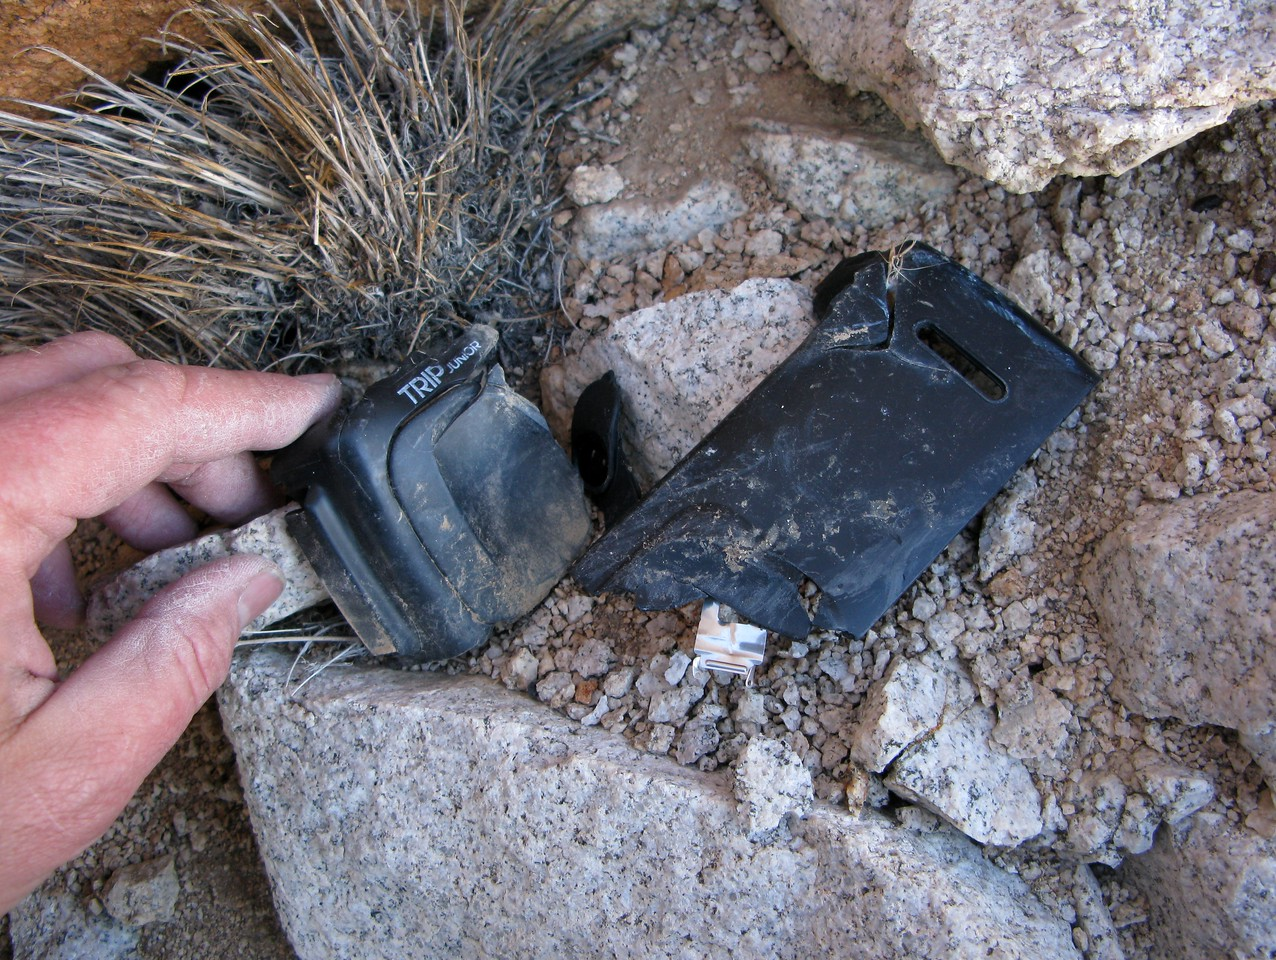 A passenger's mangled point and shoot Olympus camera was thrown over 100 feet from the impact site.